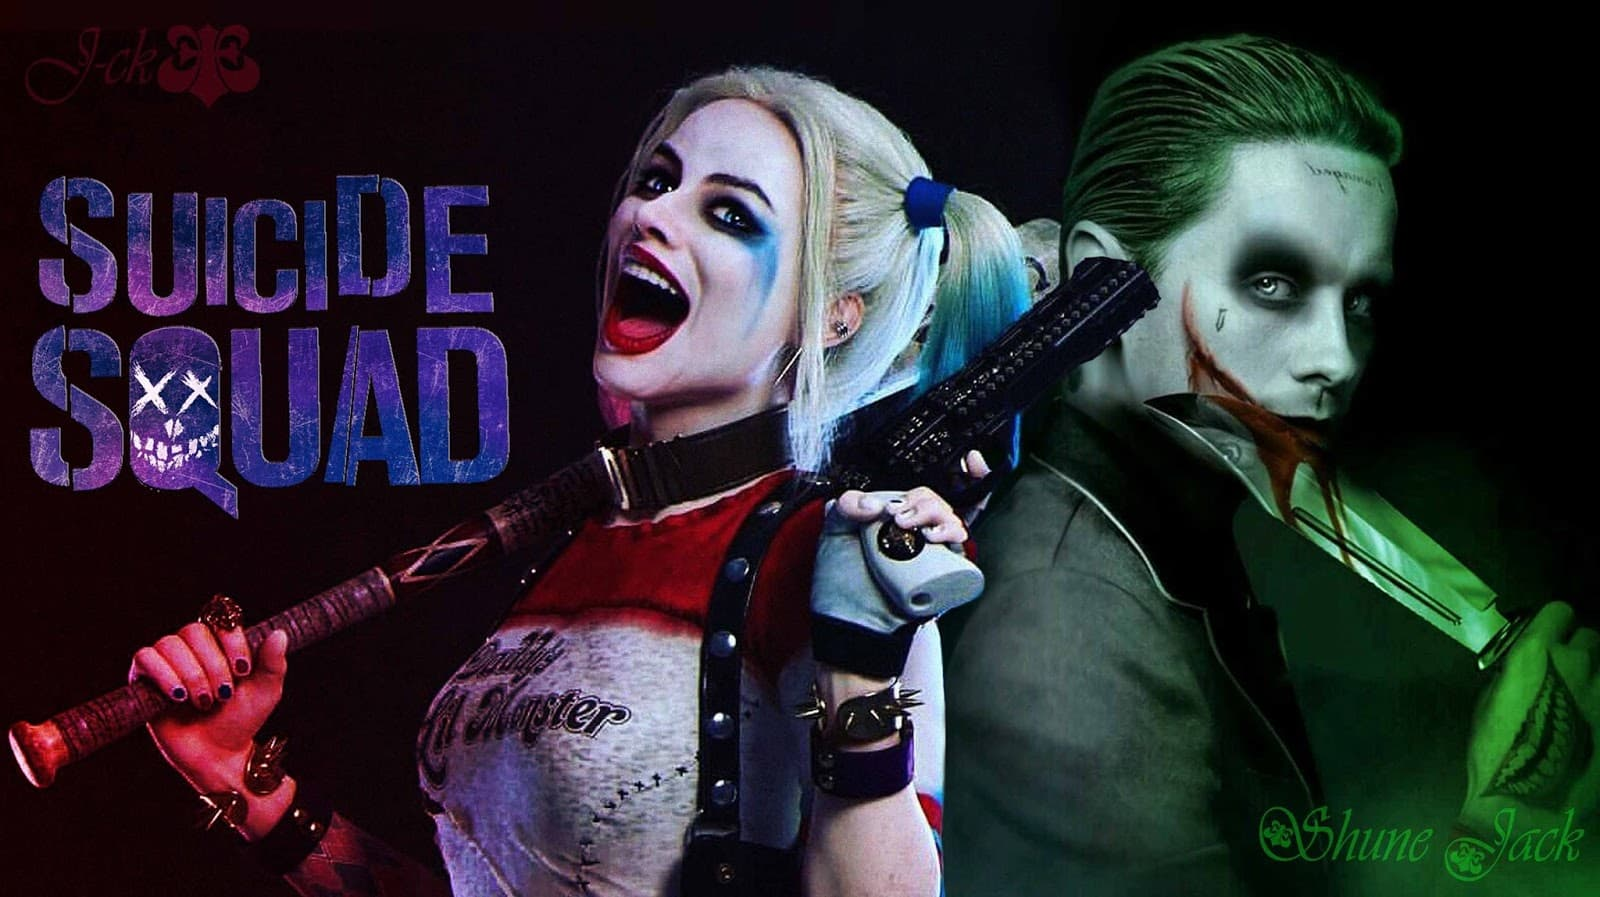 Art Harley Quinn Suicide Squad Wallpapers Top Free Art Harley